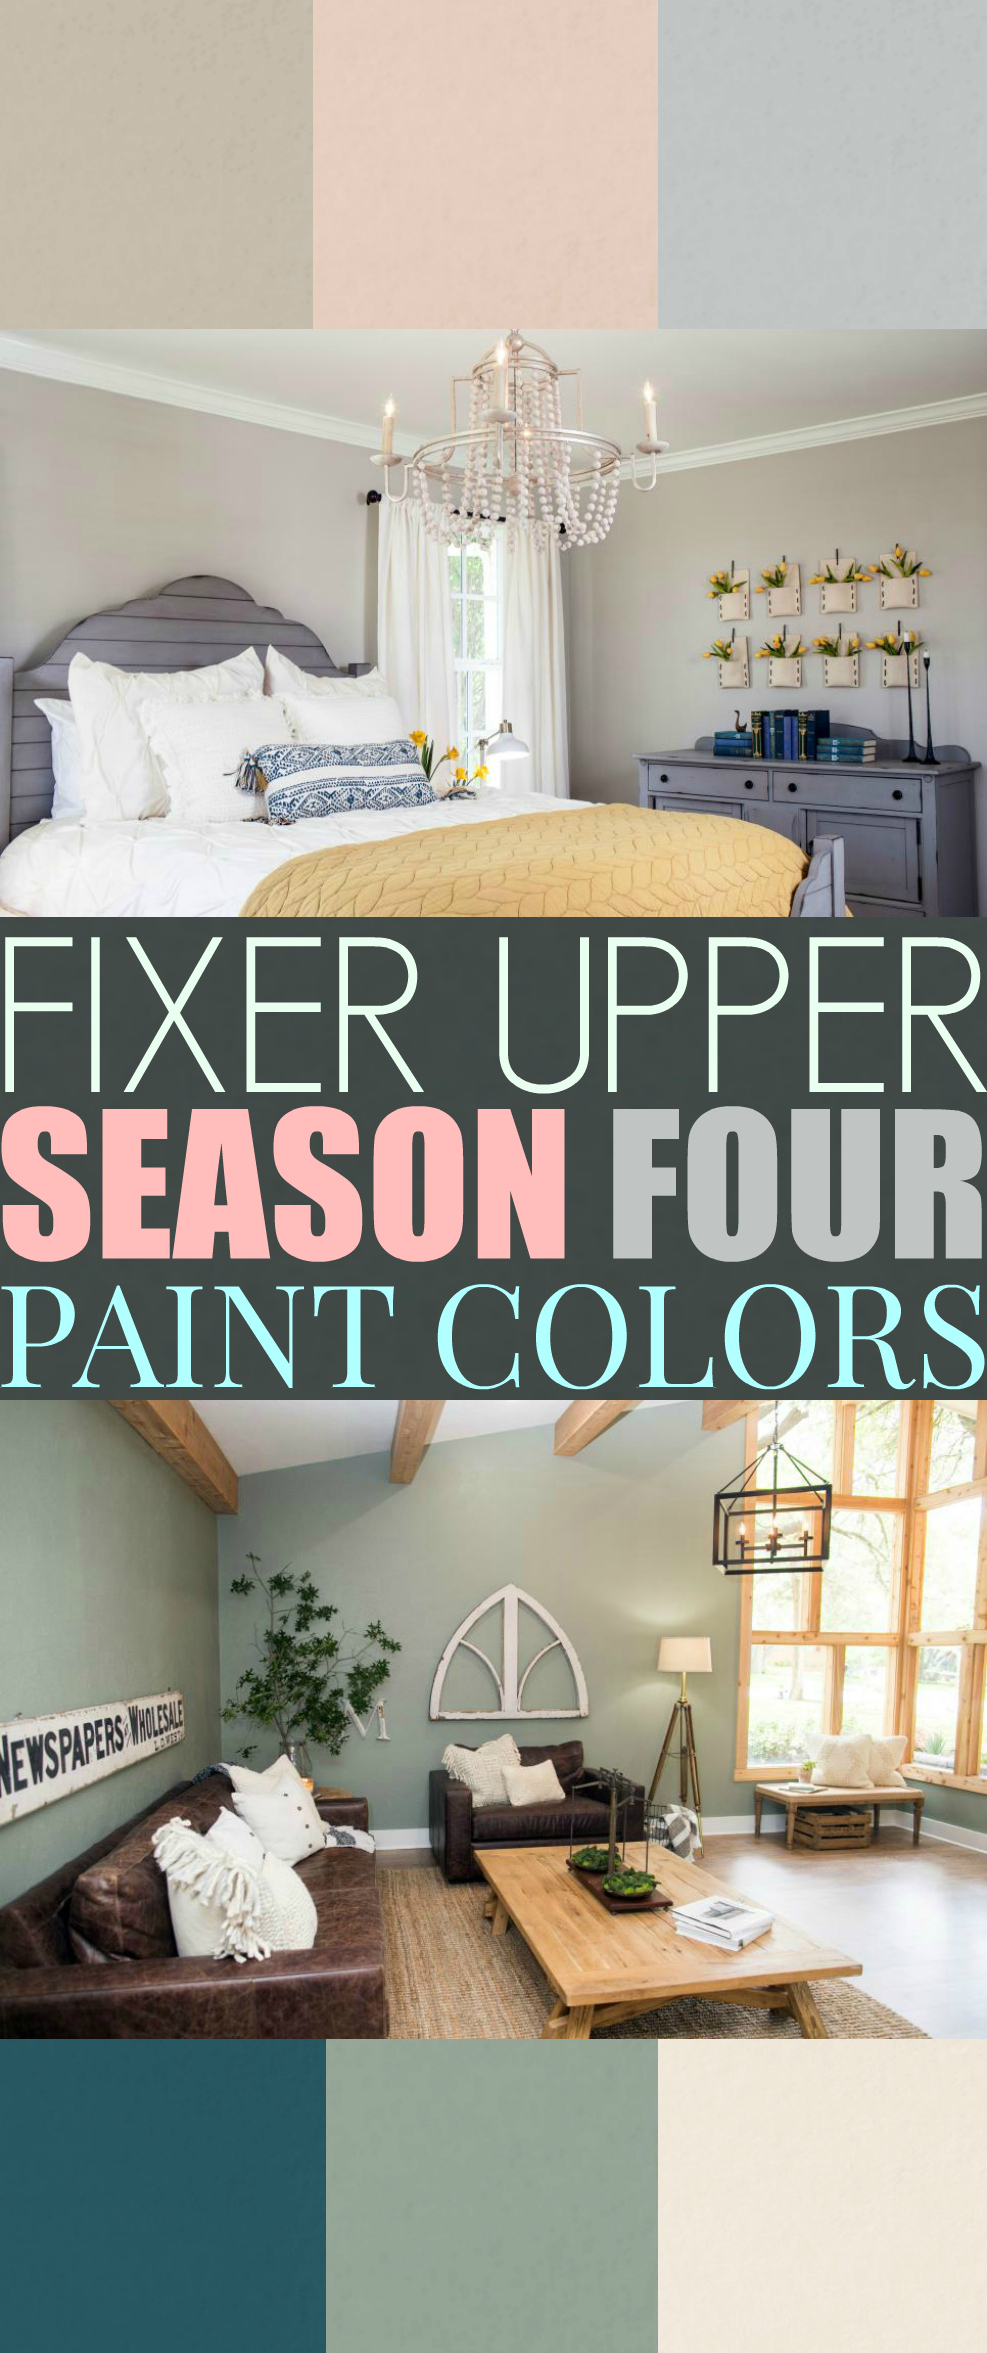 Fixer upper season 4 paint colors